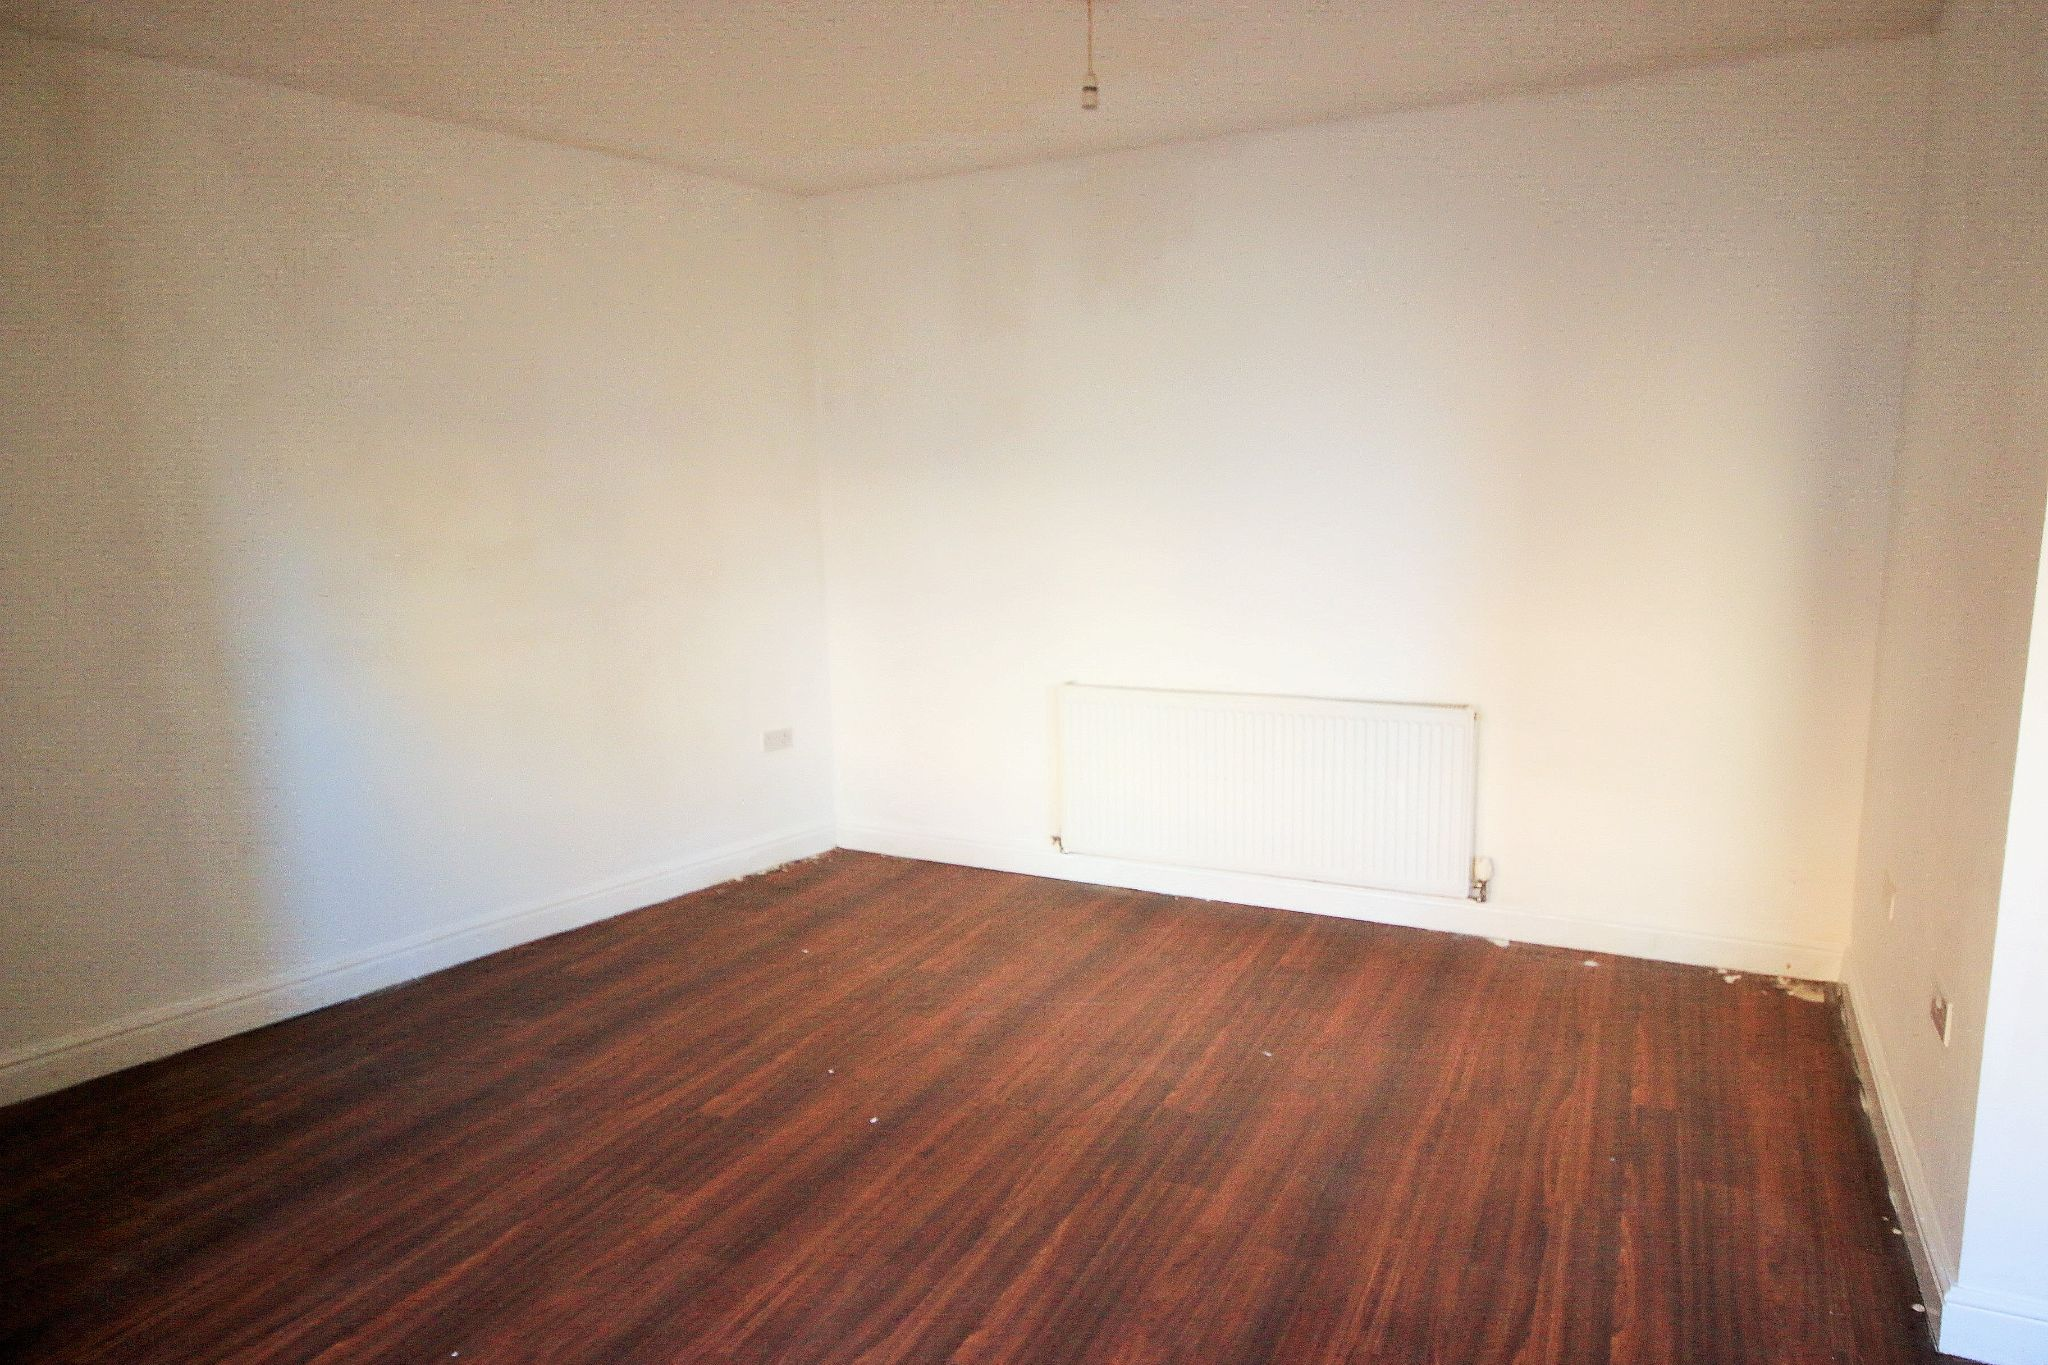 1 Bedroom End Terraced House To Rent - Photograph 2